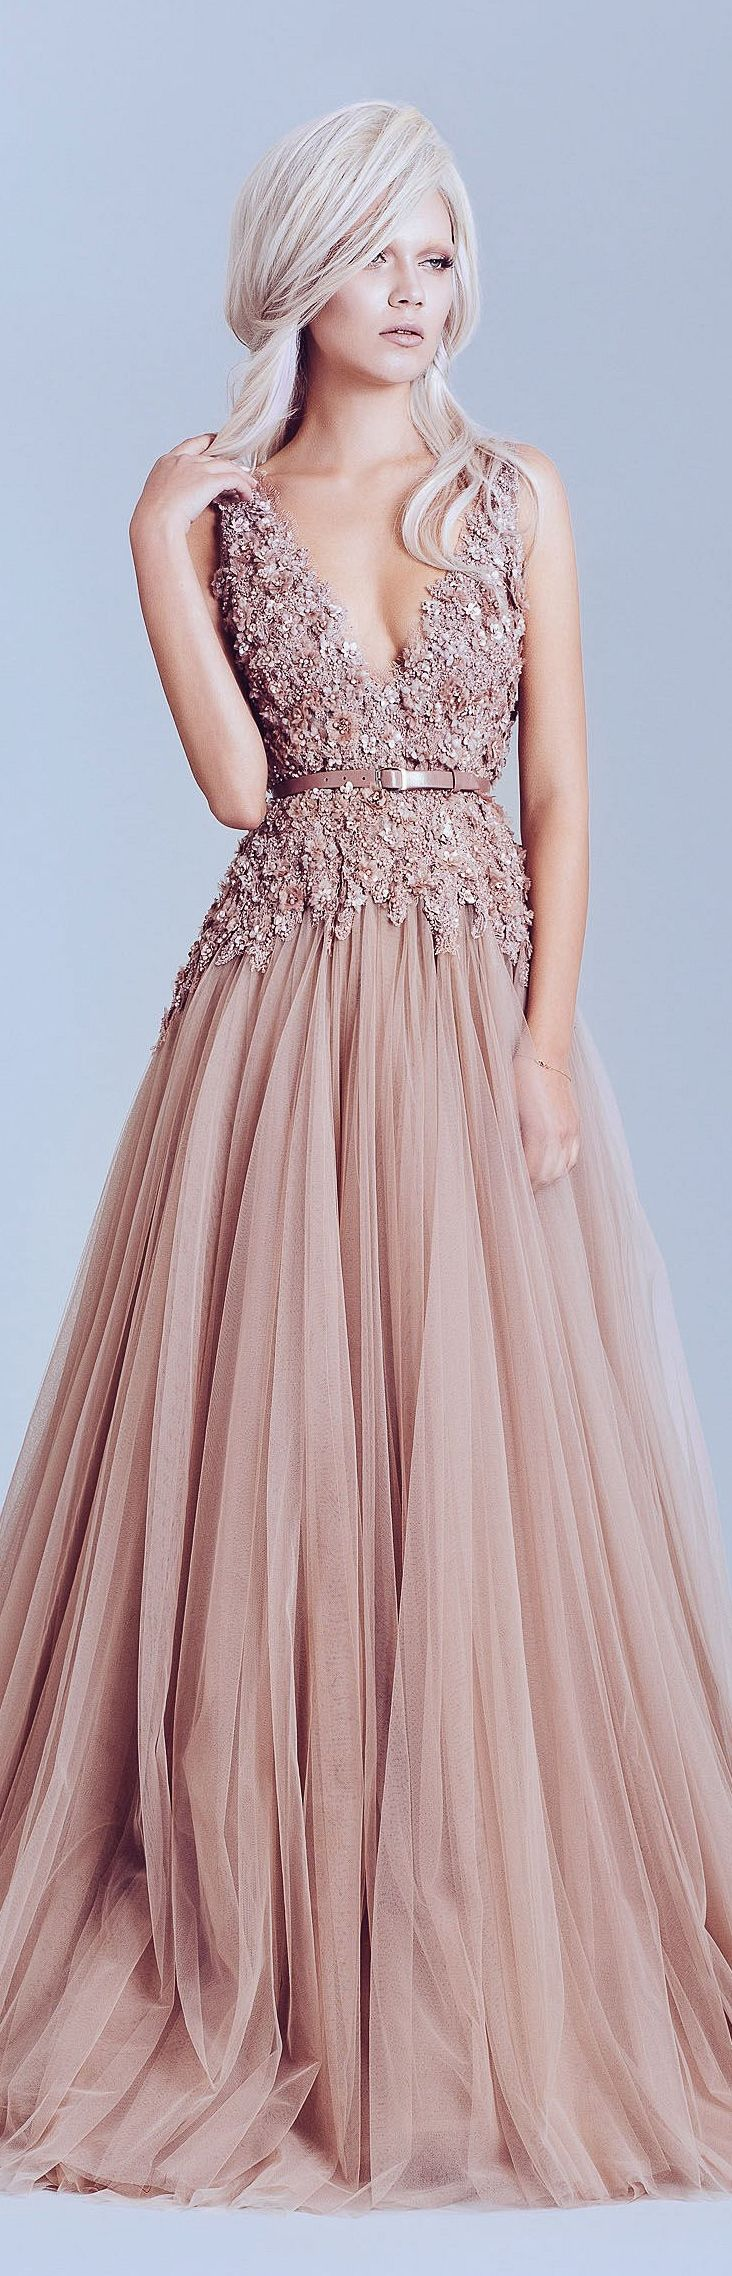 Tbdress prom dresses archives couture dresses and prom